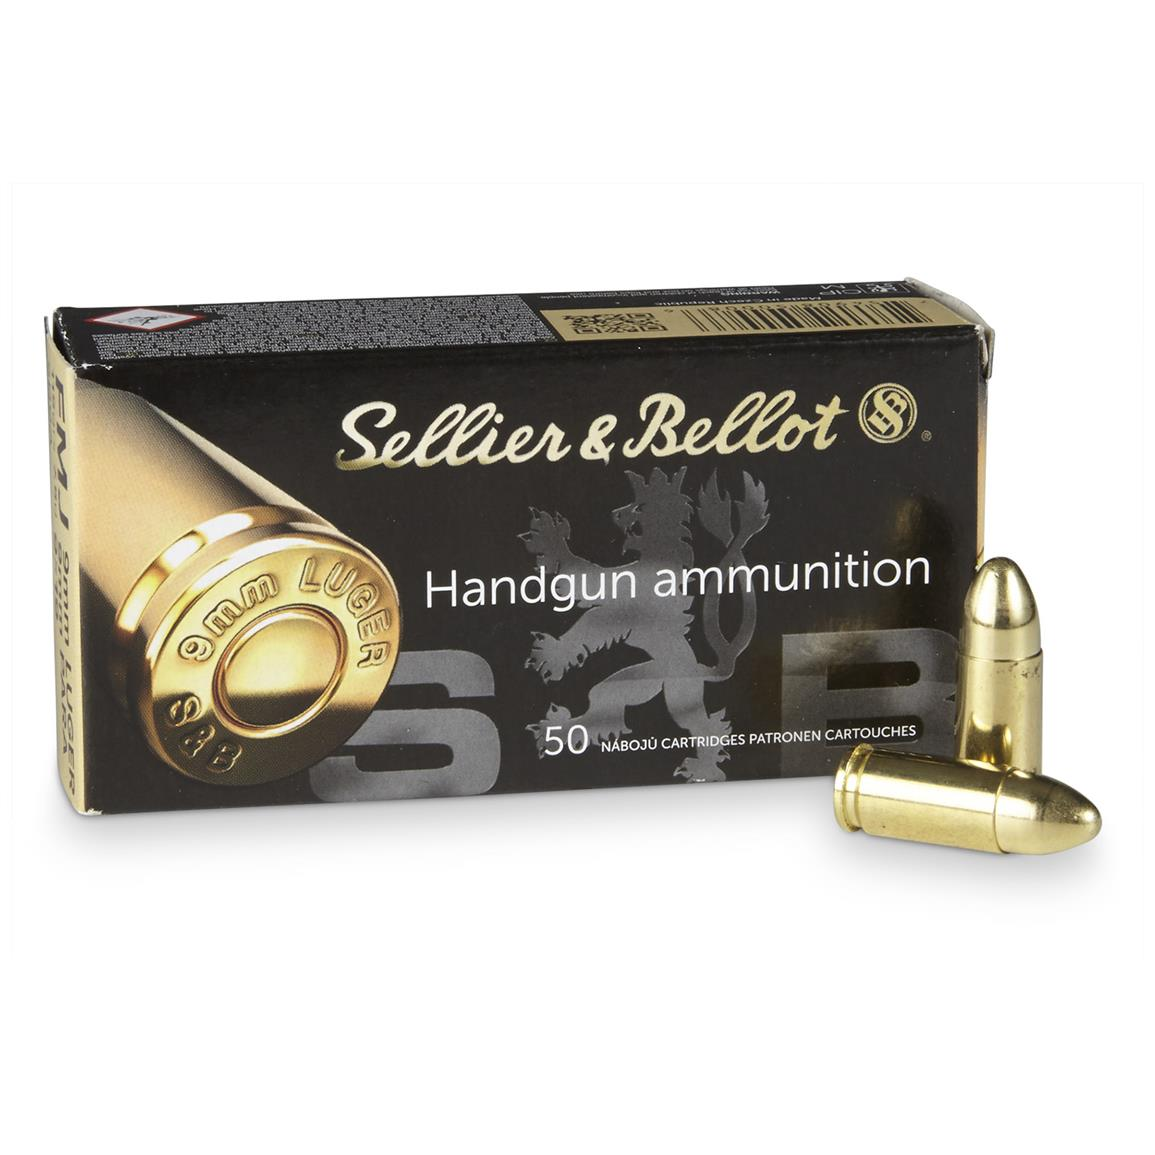 Sellier & Bellot, 9mm Luger, FMJ, 115 Grain, 50 Rounds